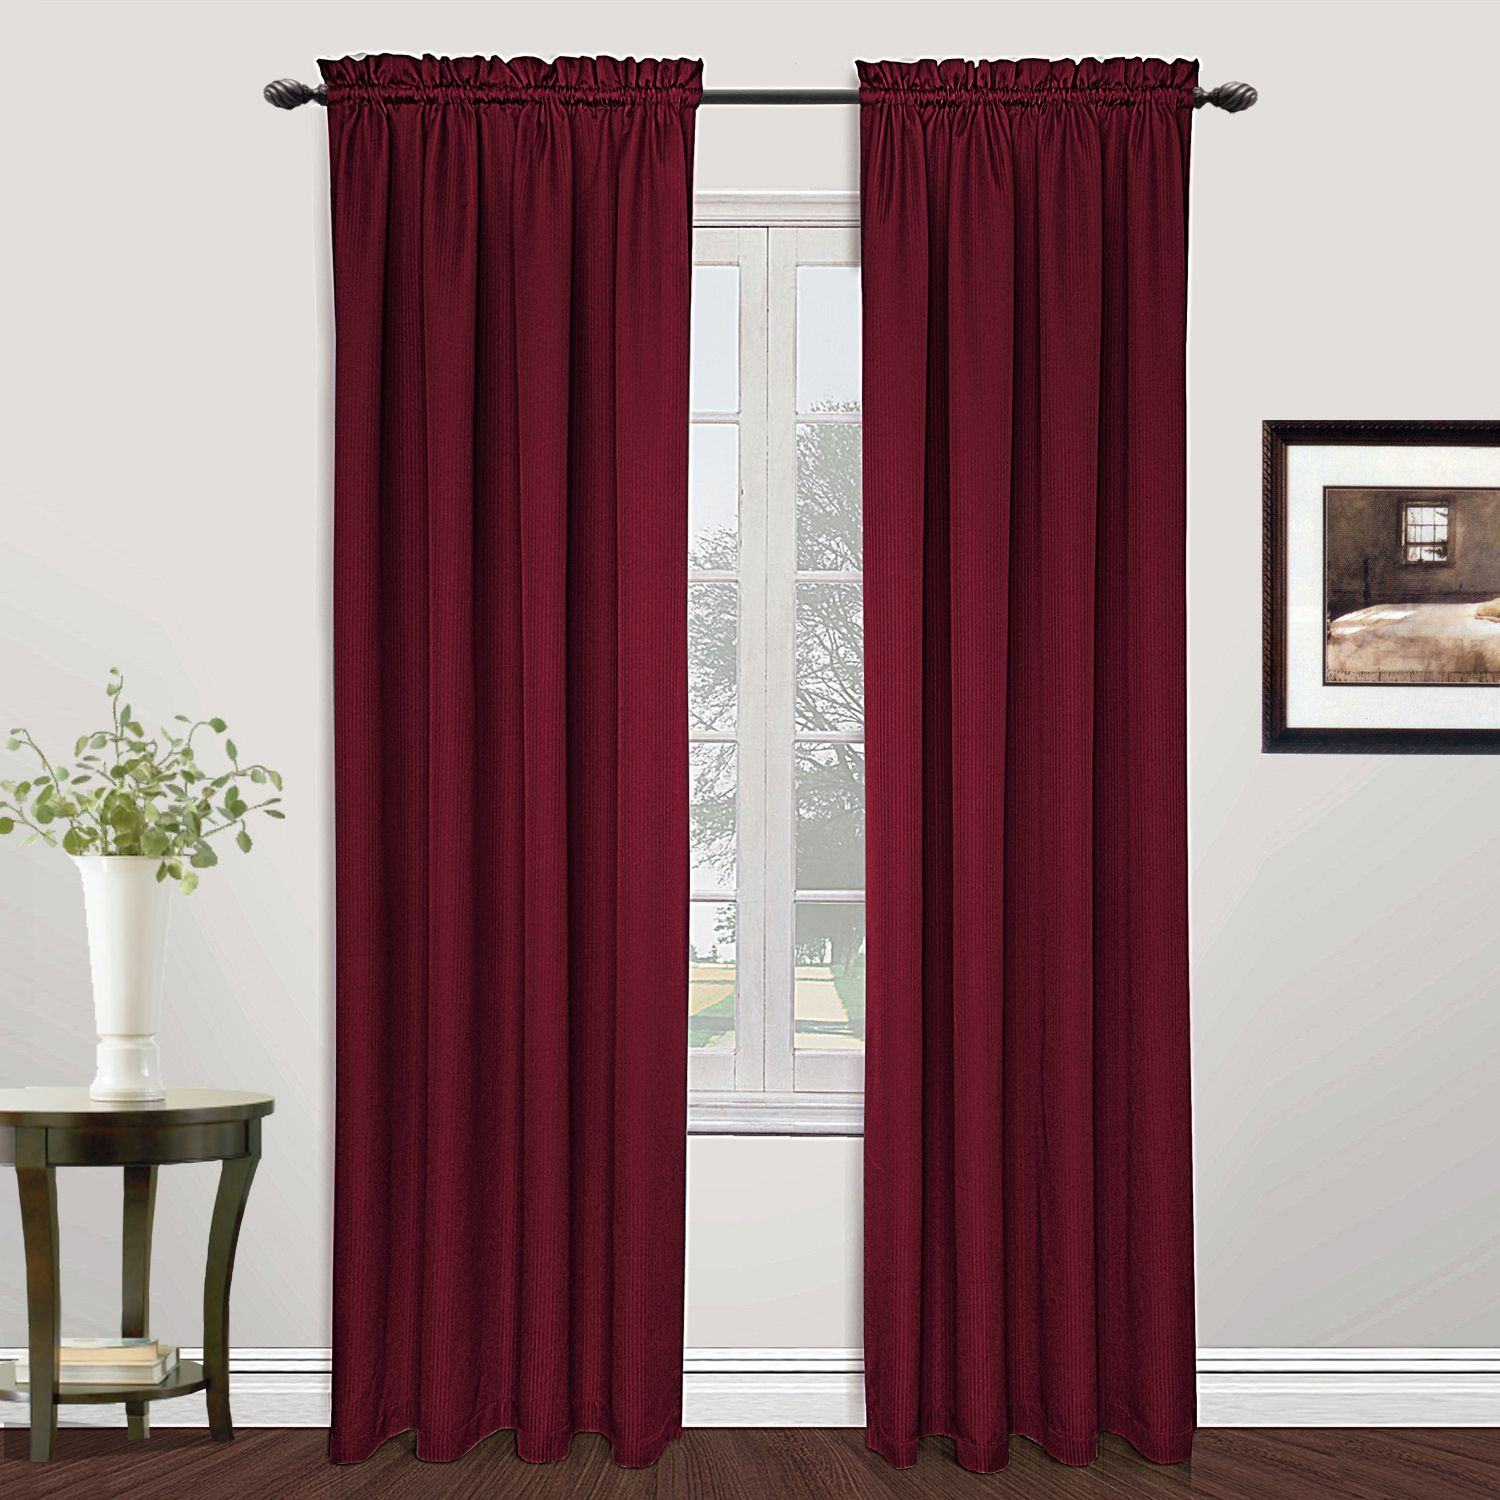 fabrics velvet l curtain size s exclusive red deals for curtains x surprise polyester burgundy blackout signature solid panel shop decor